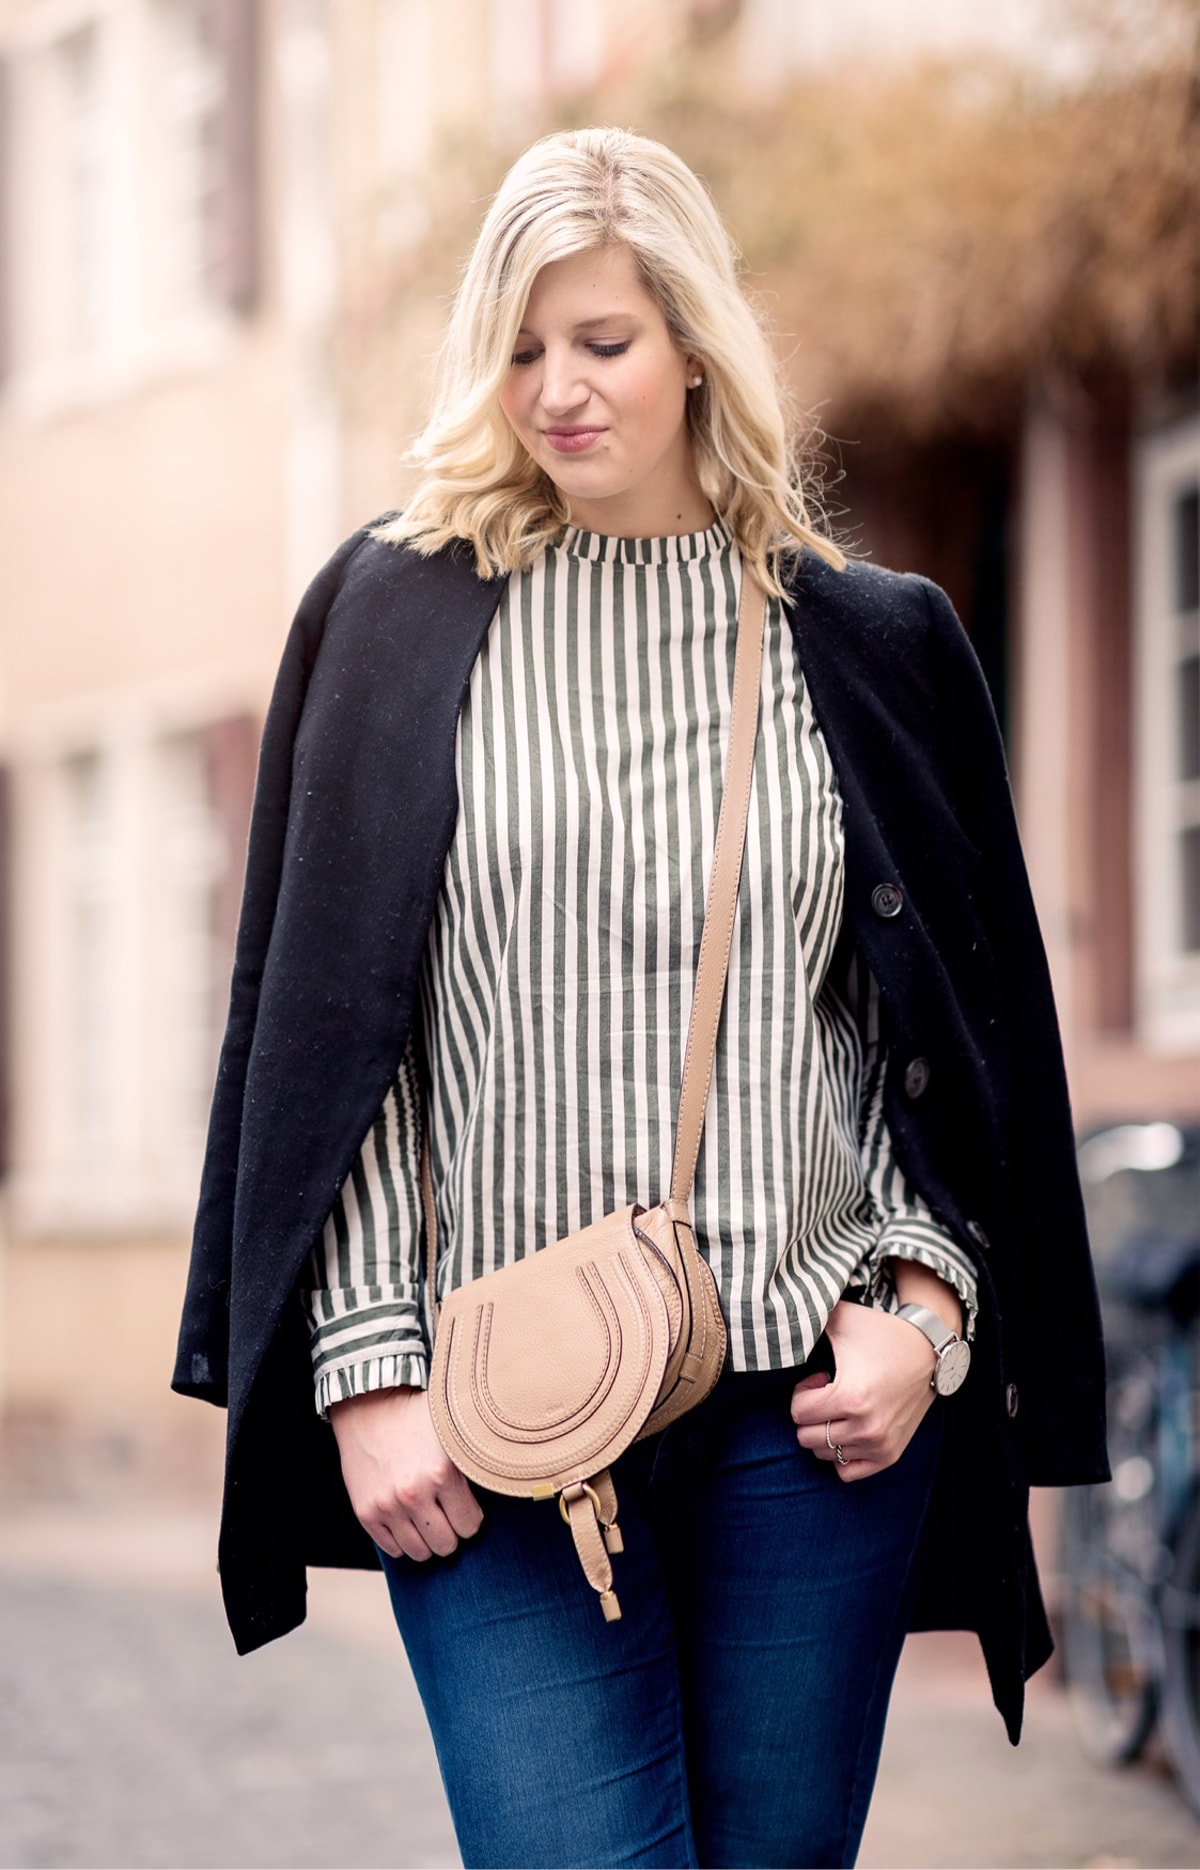 OUTFIT: More Stripes